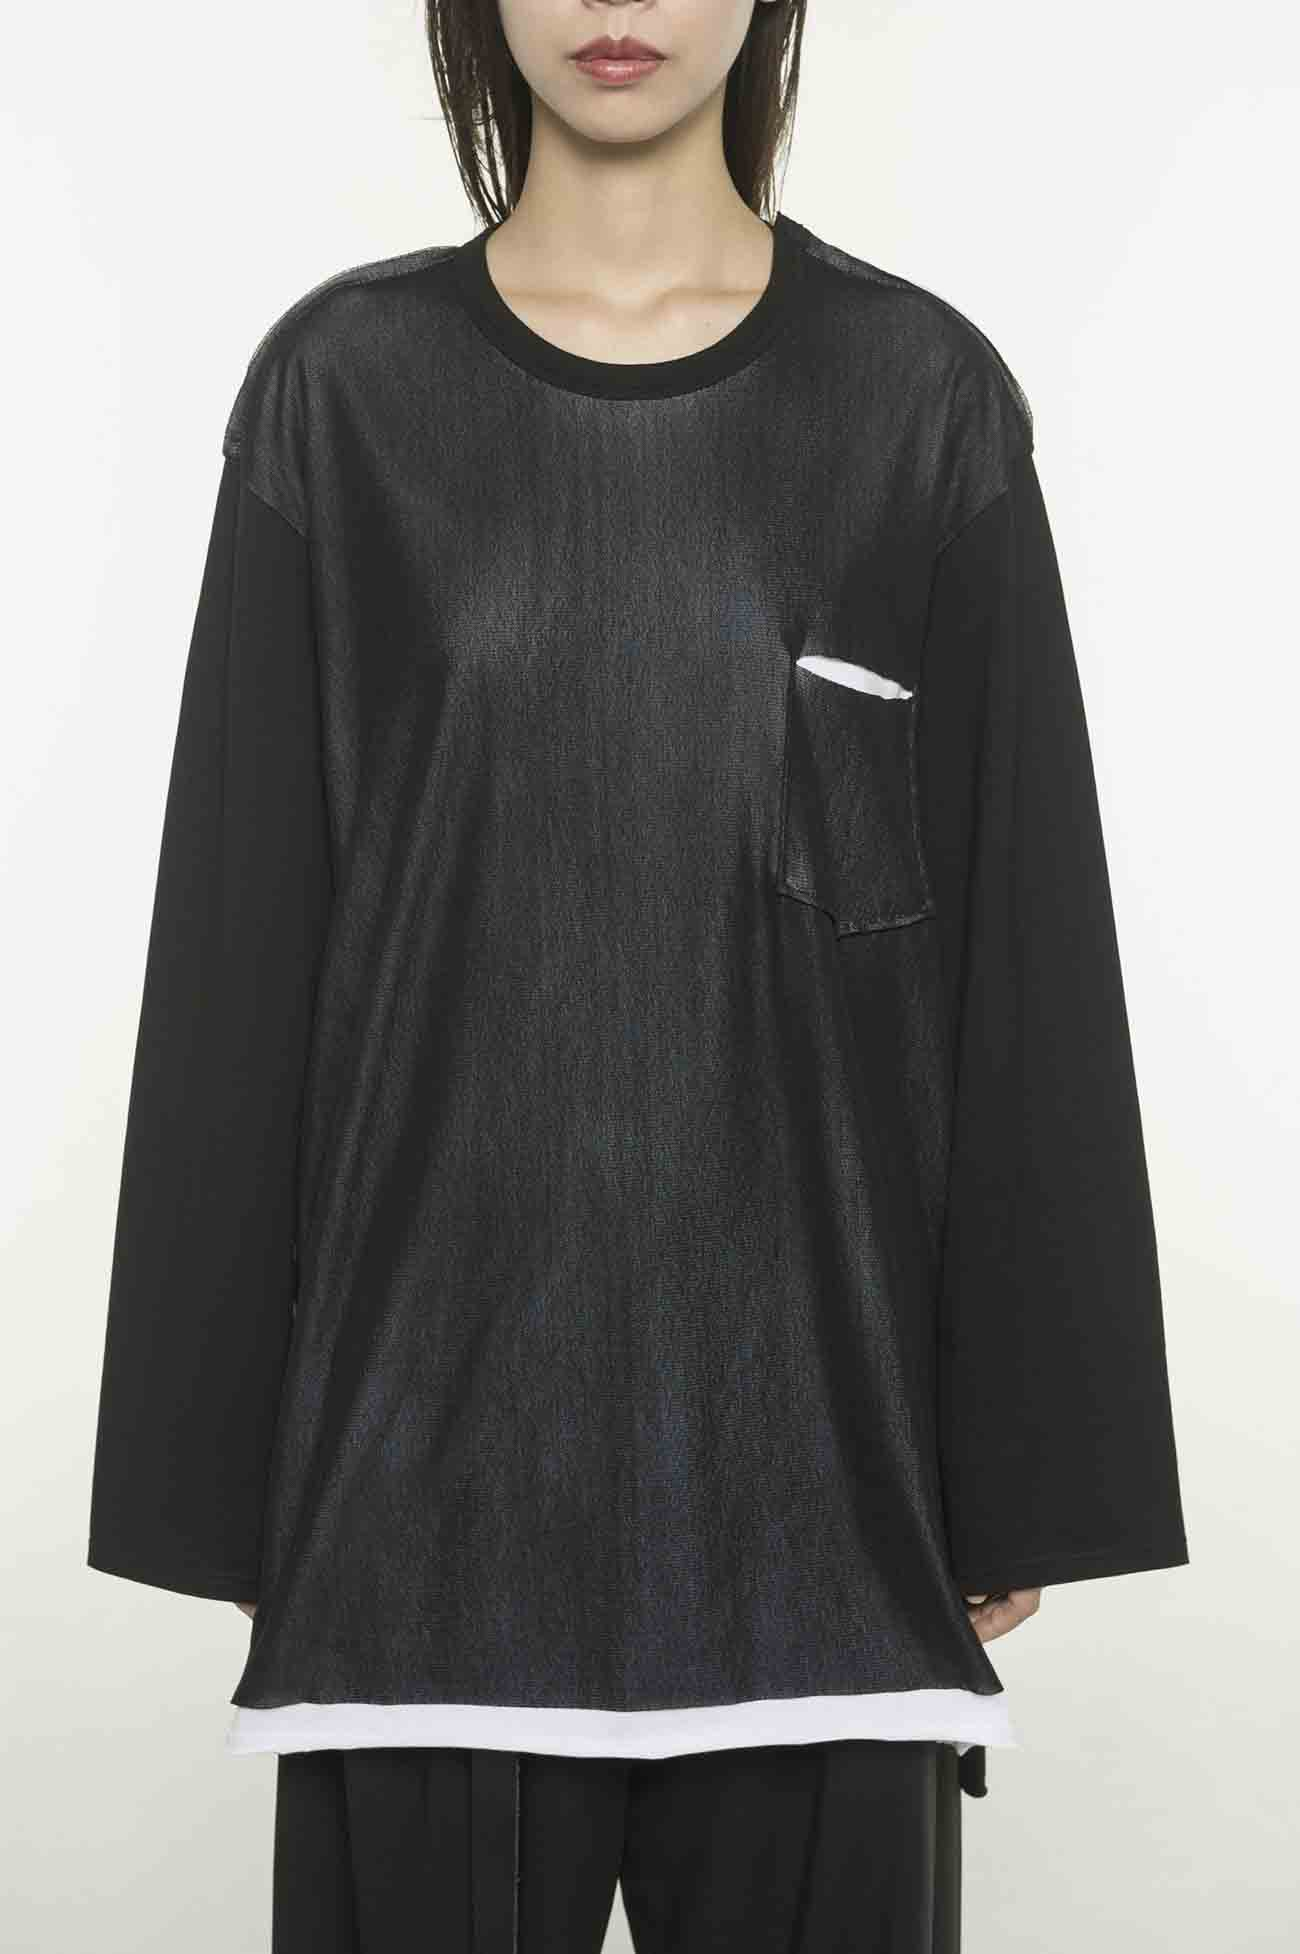 40/2 Cotton Jersey Layered Tulle Pocket Long sleeve T-shirt